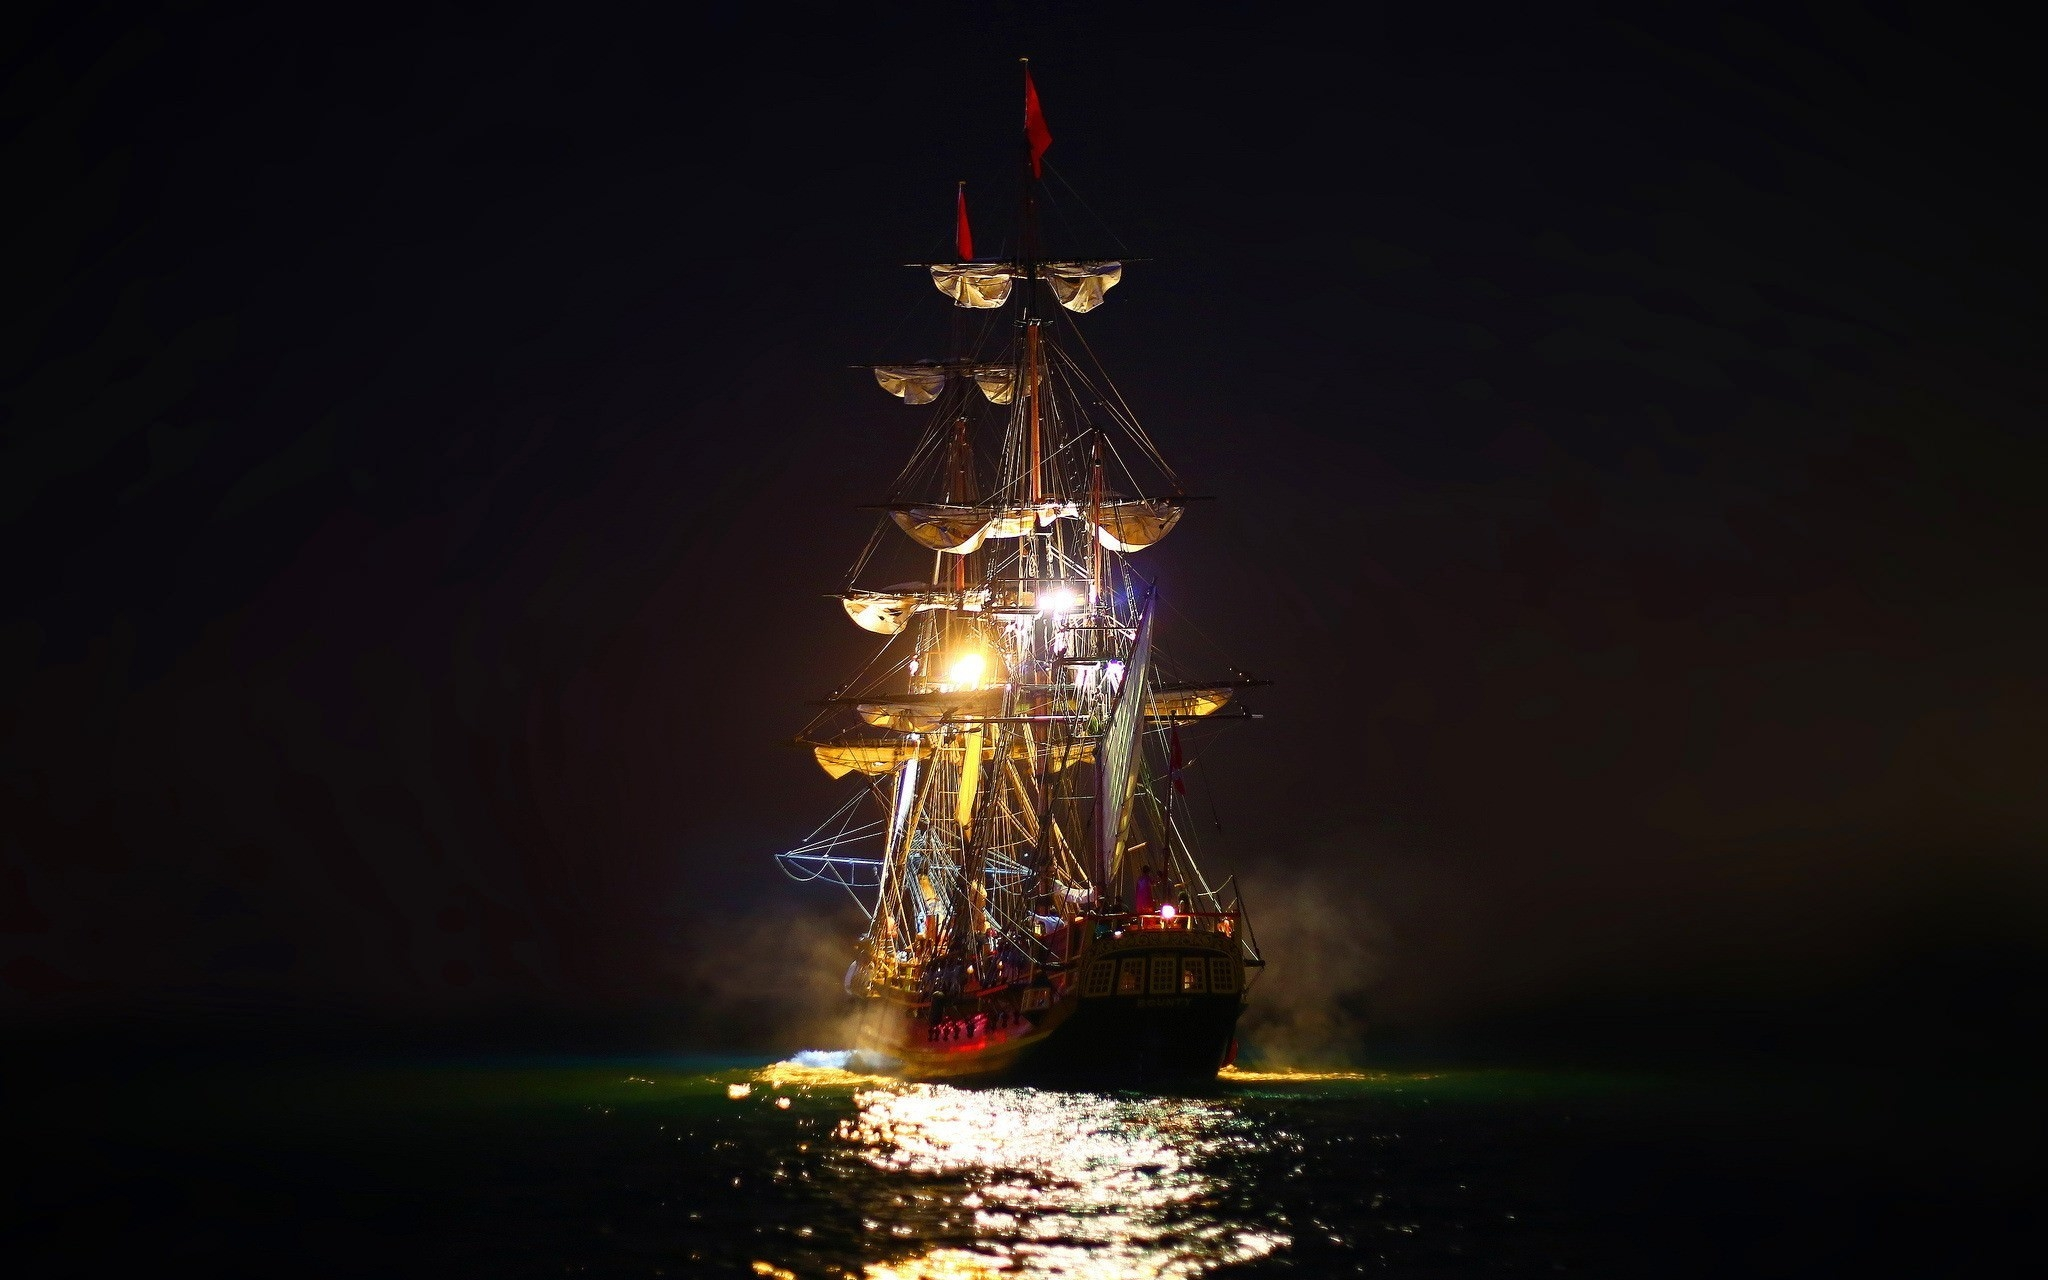 Sailing at Night Wallpaper